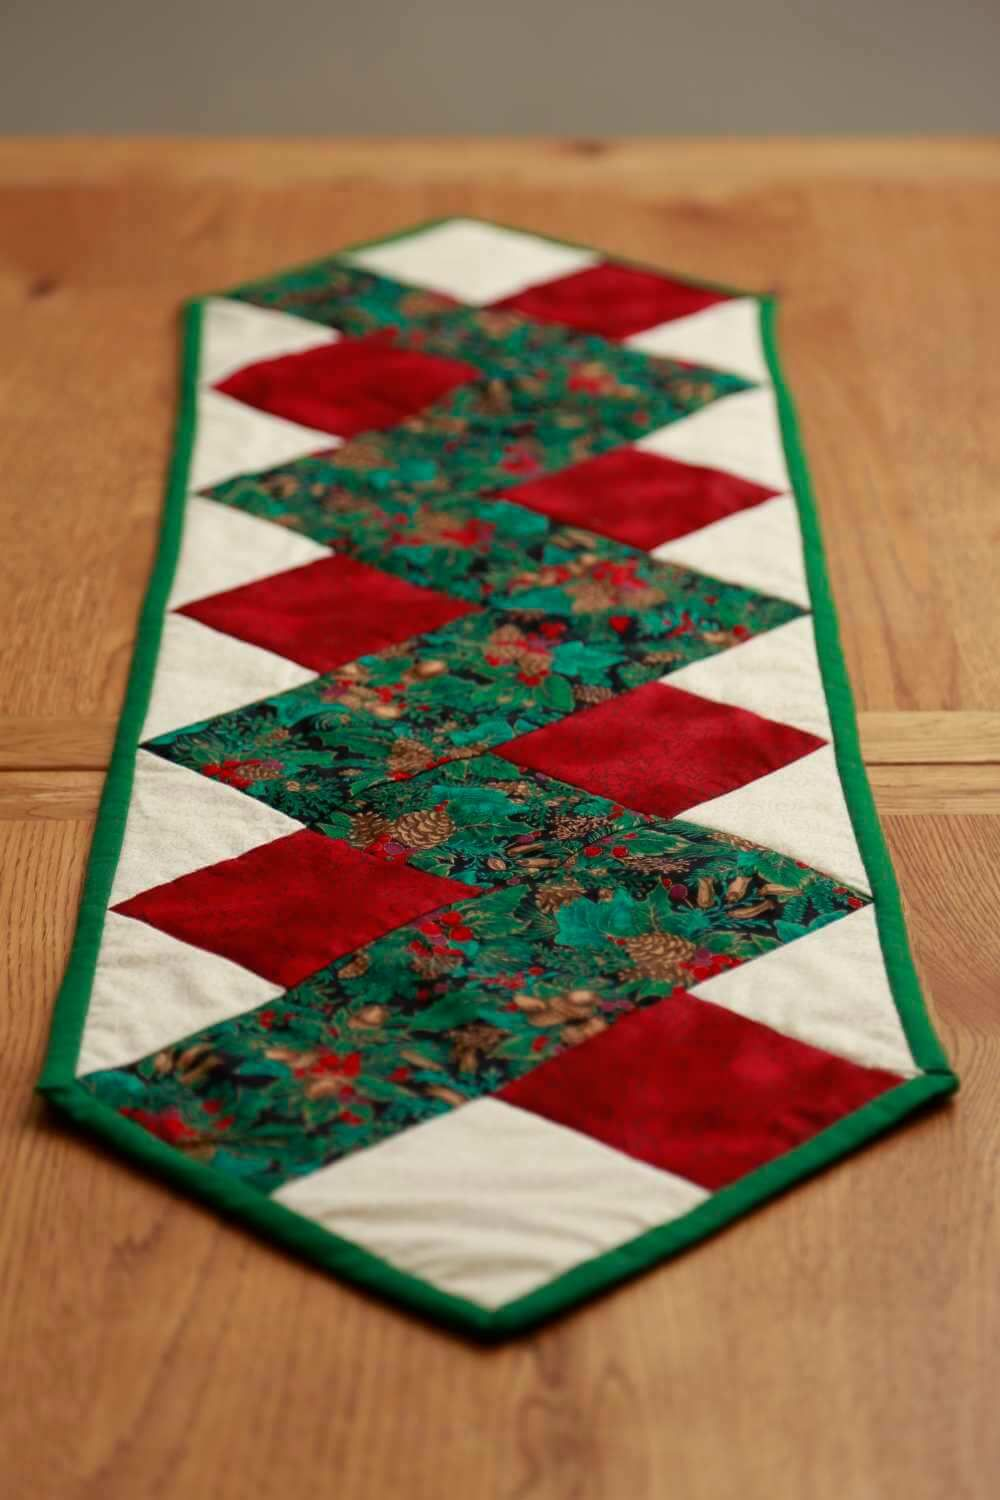 Stunning Green Patterned Christmas Table Runner With Berries Fir Cones And Ivy Leaves Dark Red Marbled Cream Fabric Zig Zag Quilted